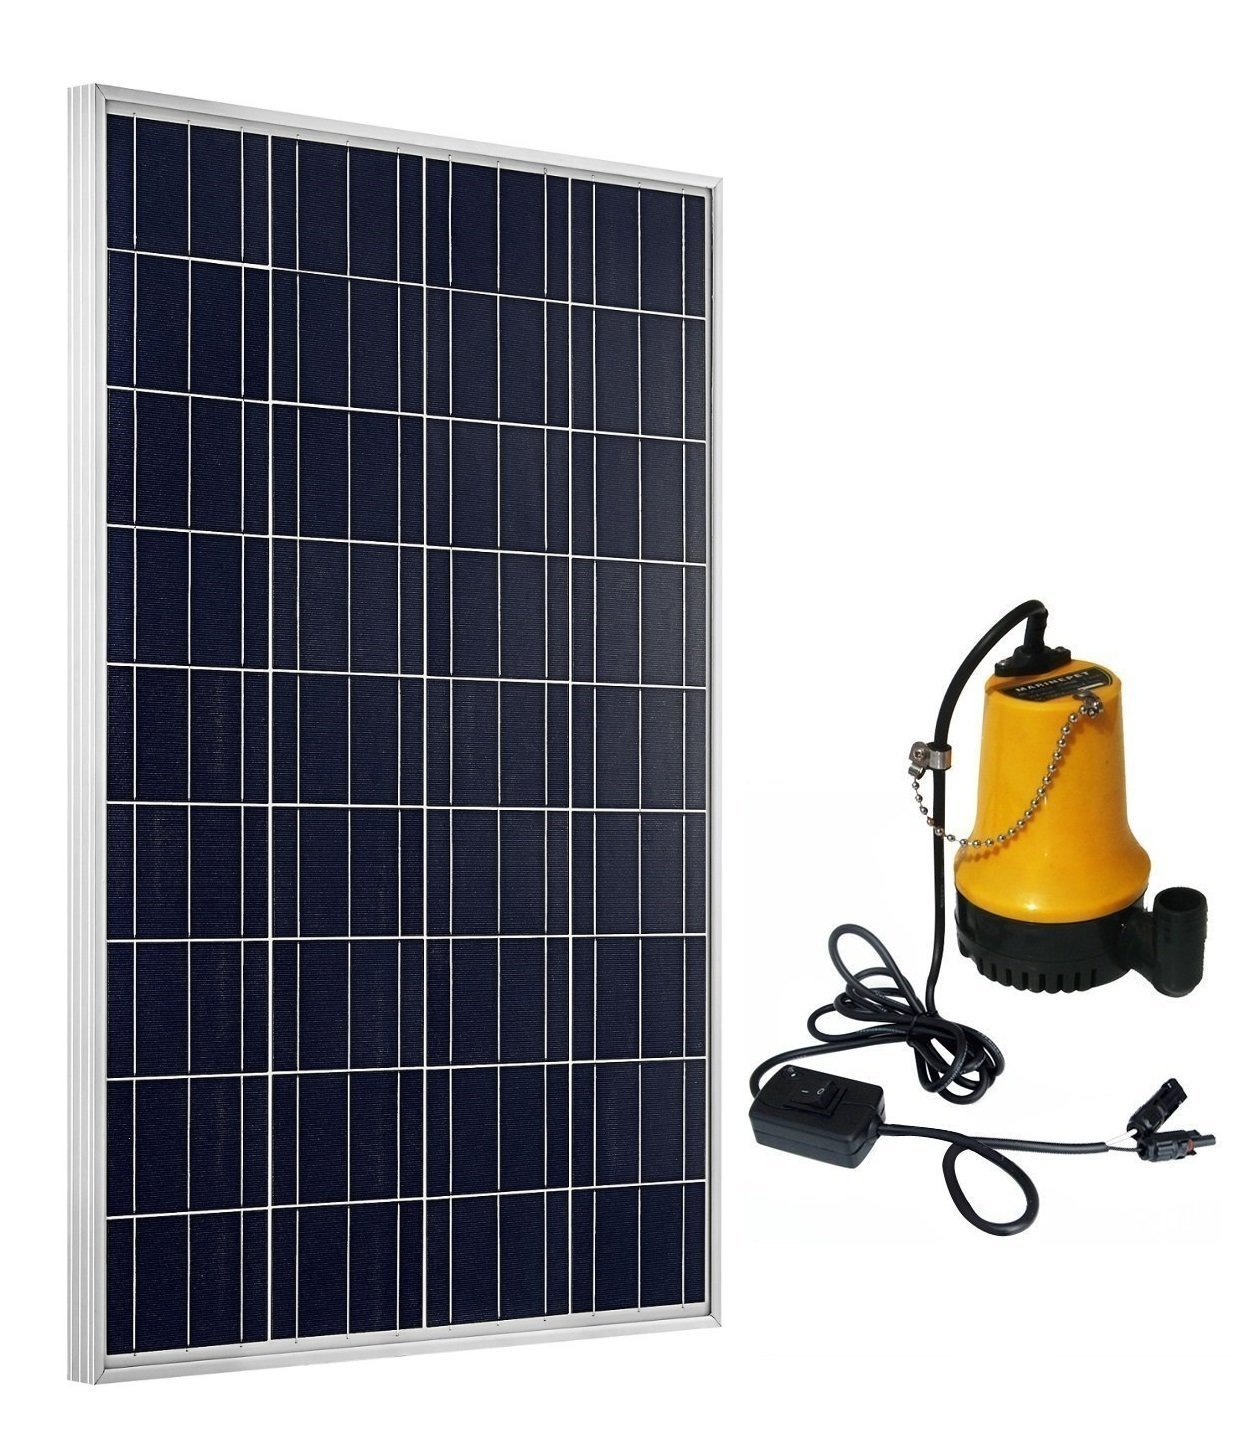 ECO-WORTHY Solarbetriebene Pump Kit: 100 Watt Solarpanel mit ...